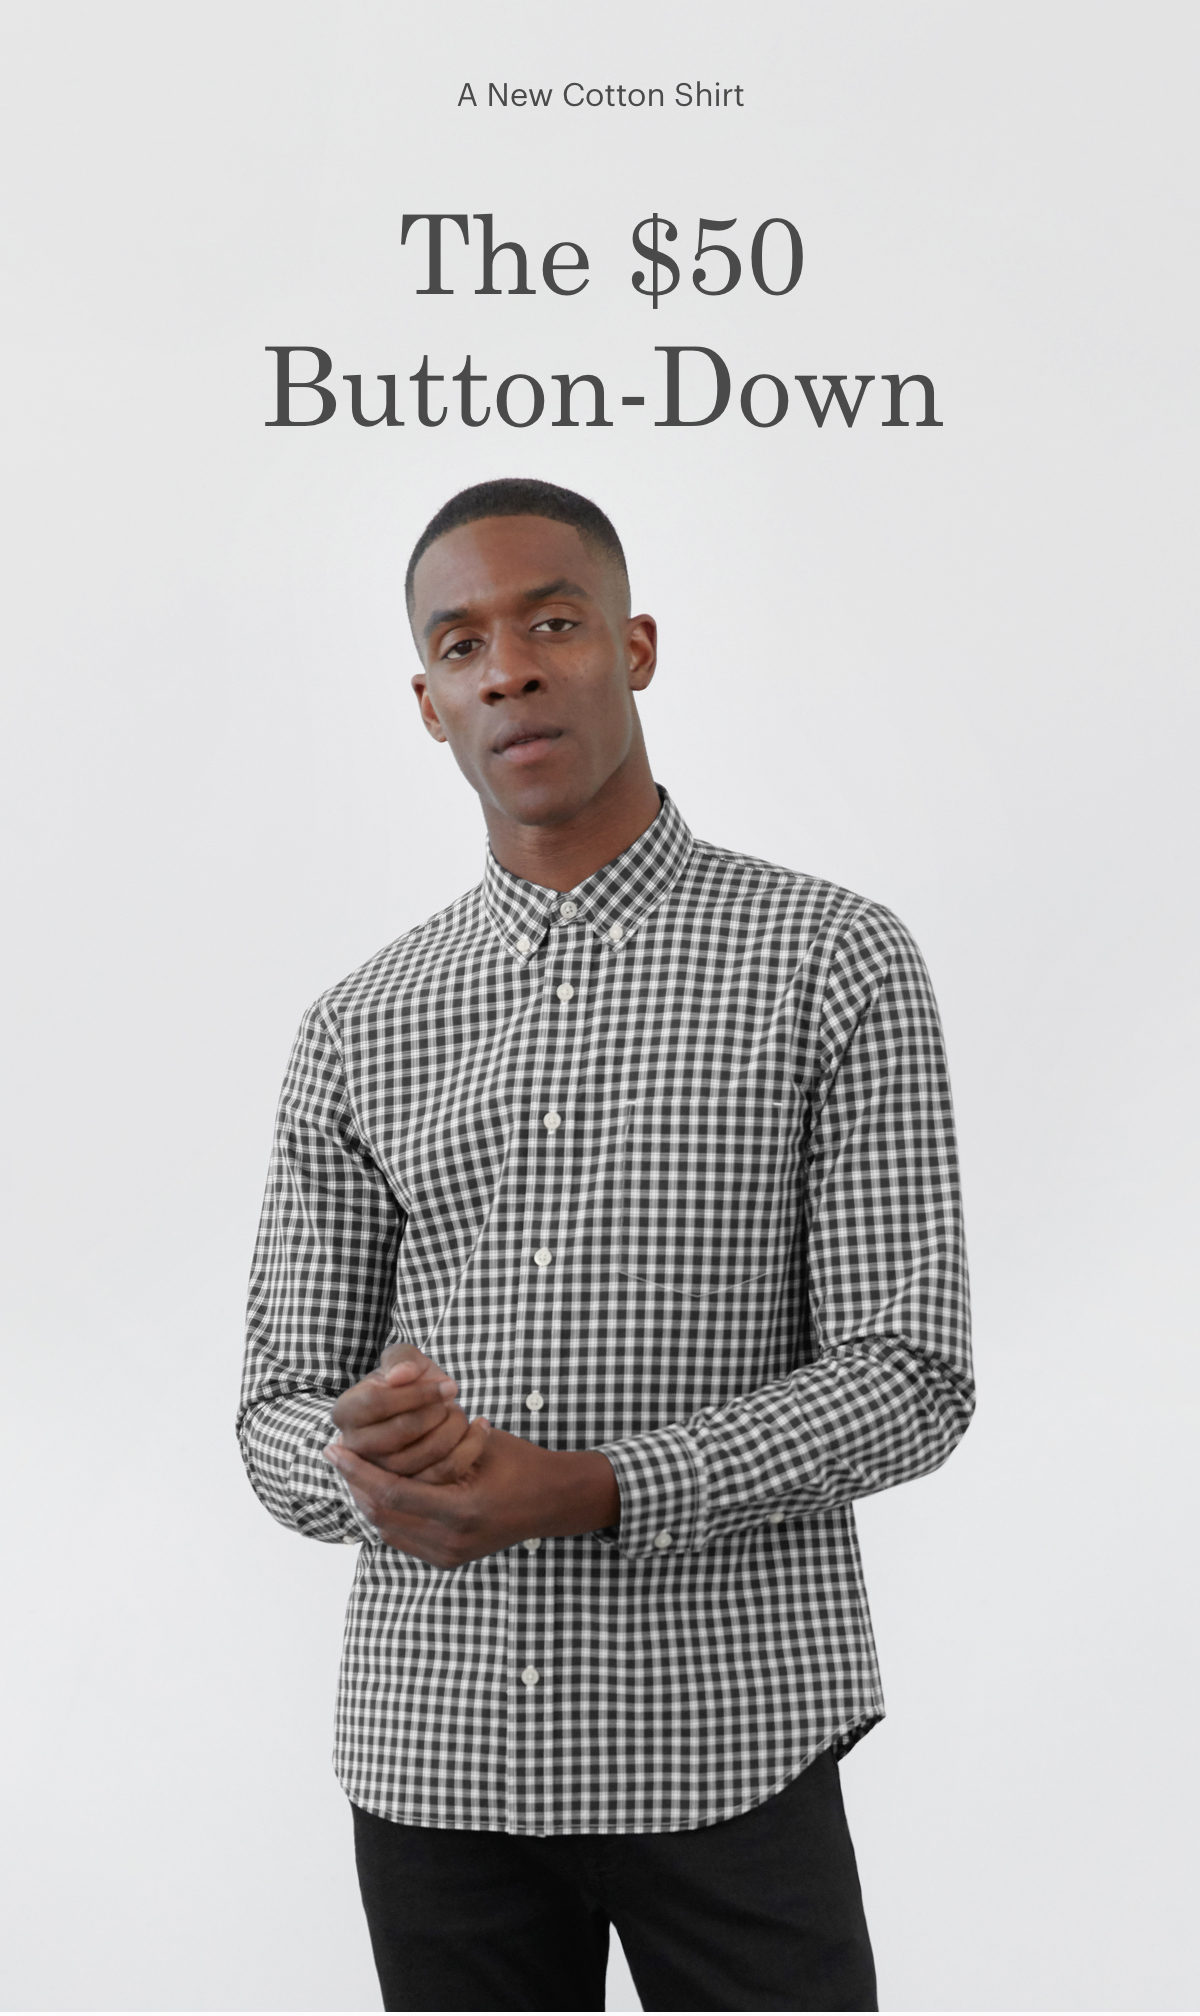 The $50 Button-Down